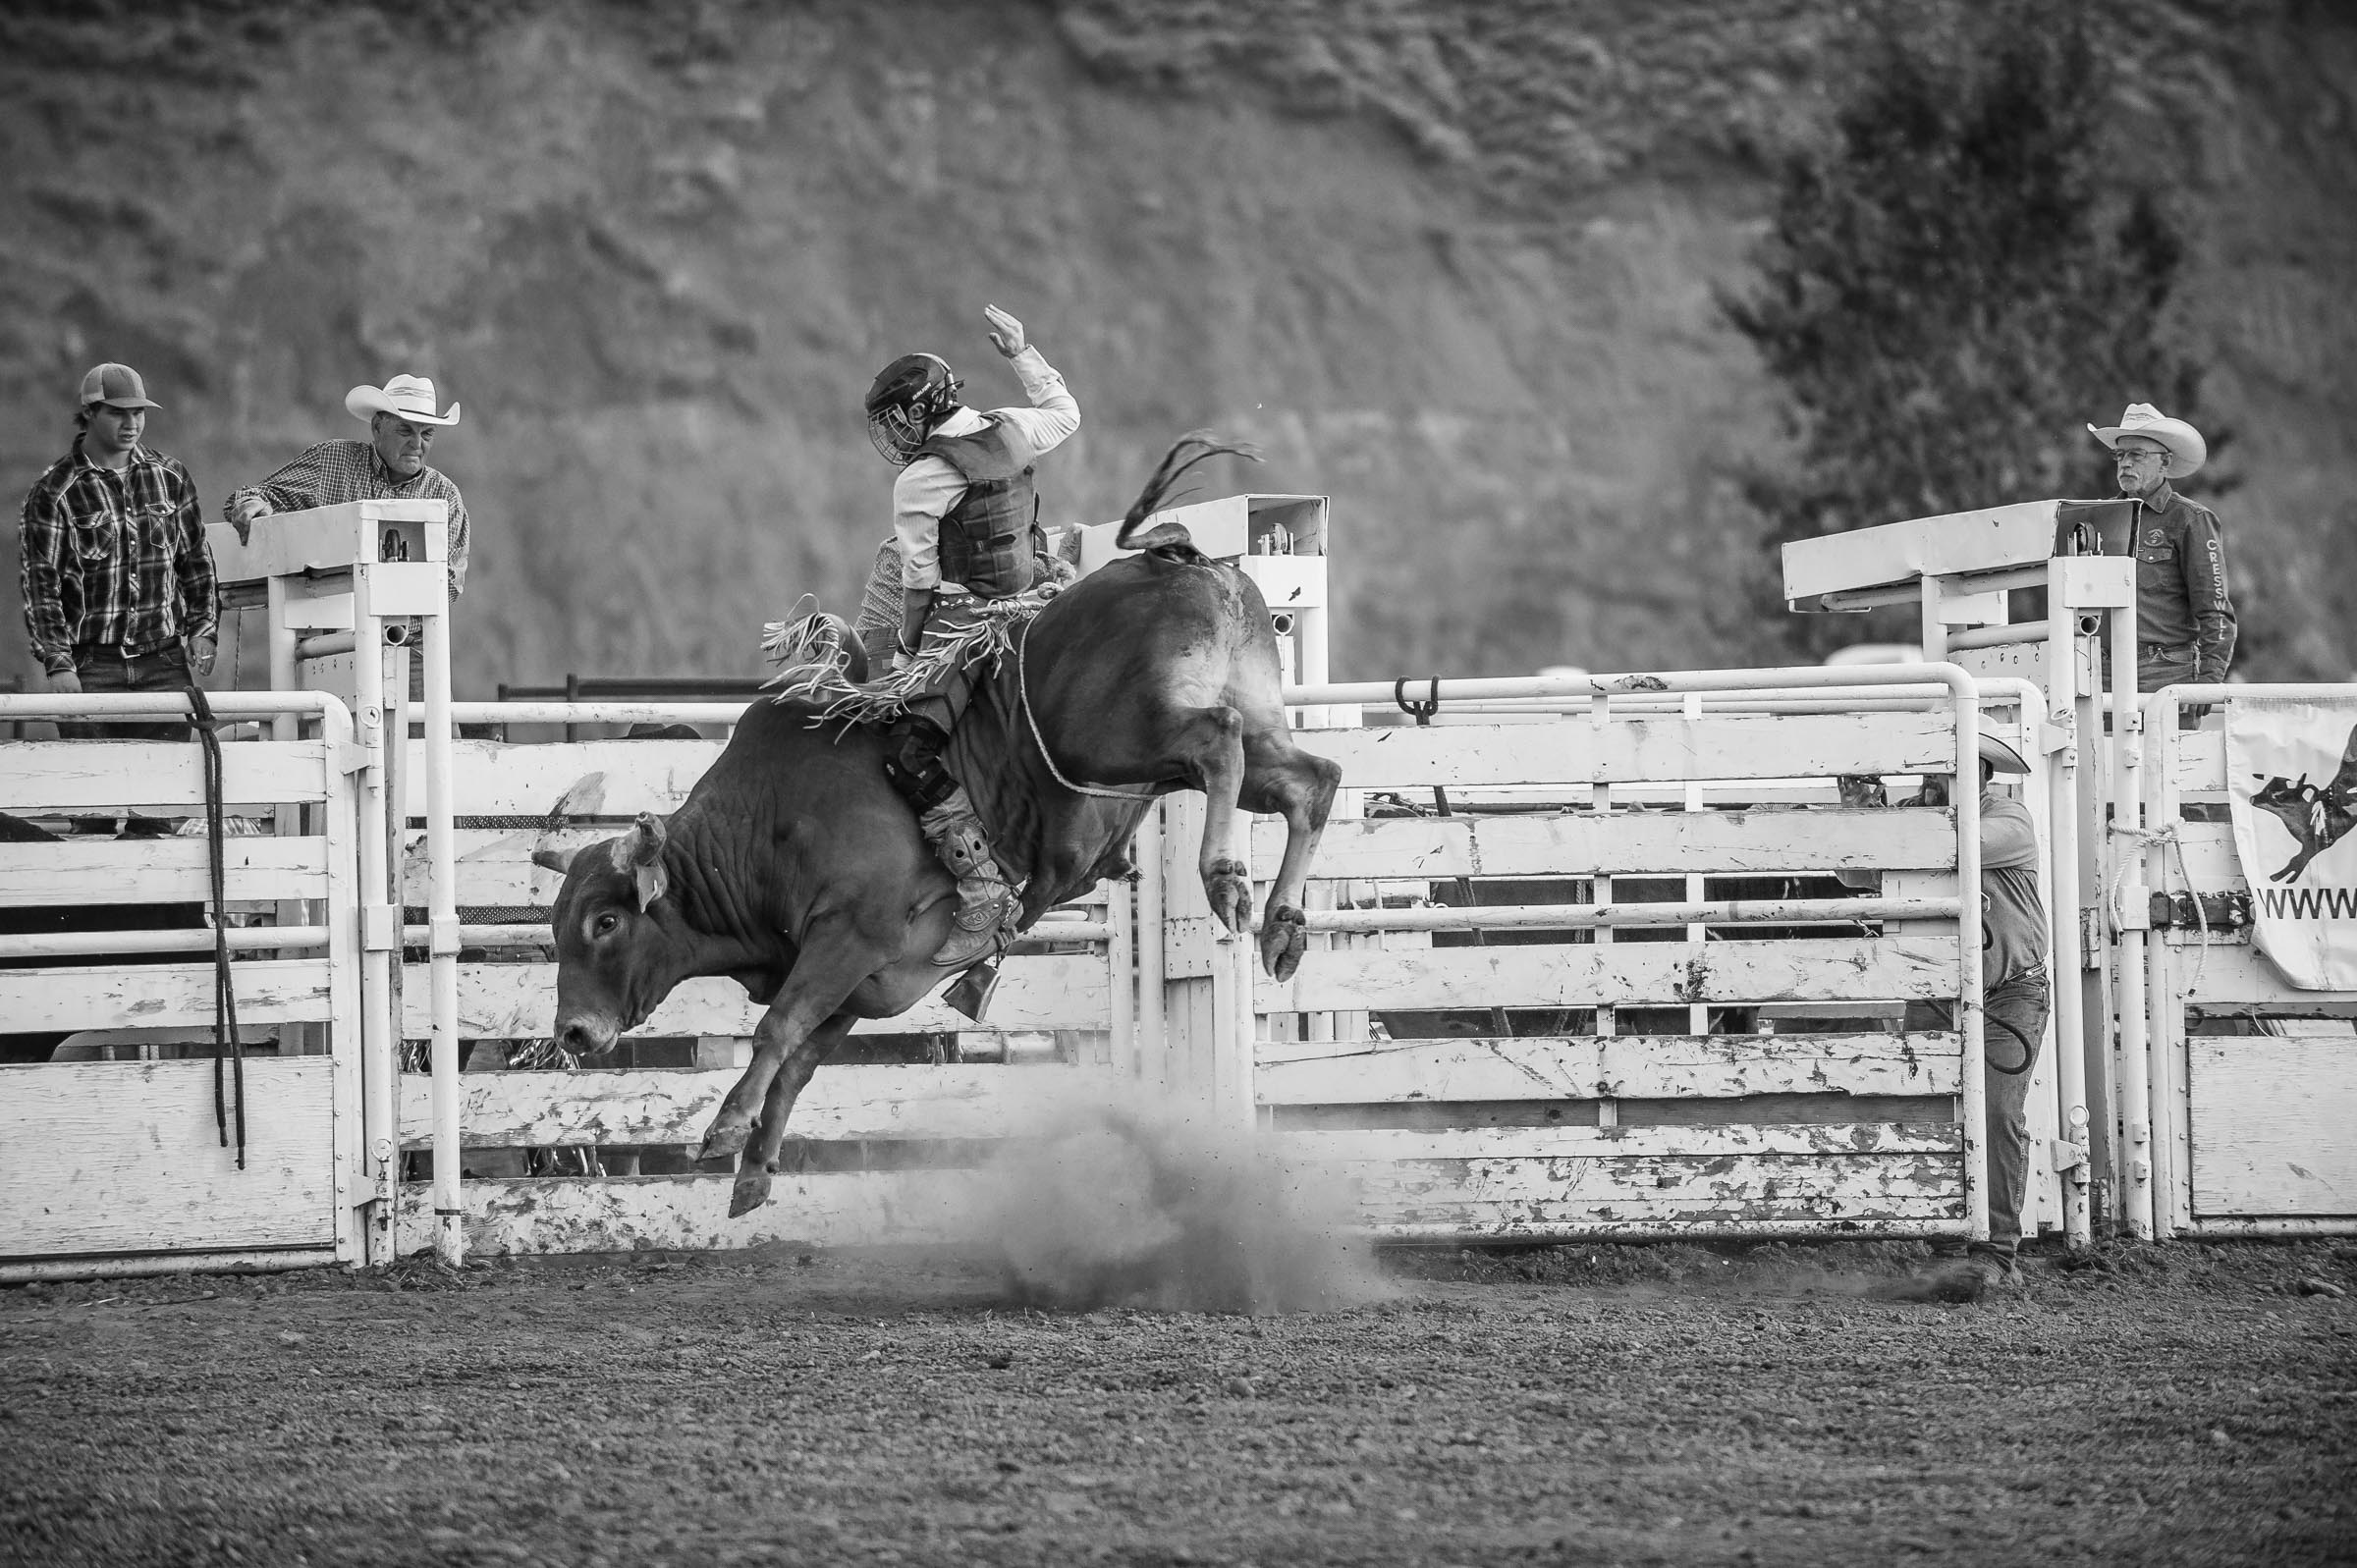 rodeo_whisky-bent_bynum-2453.JPG